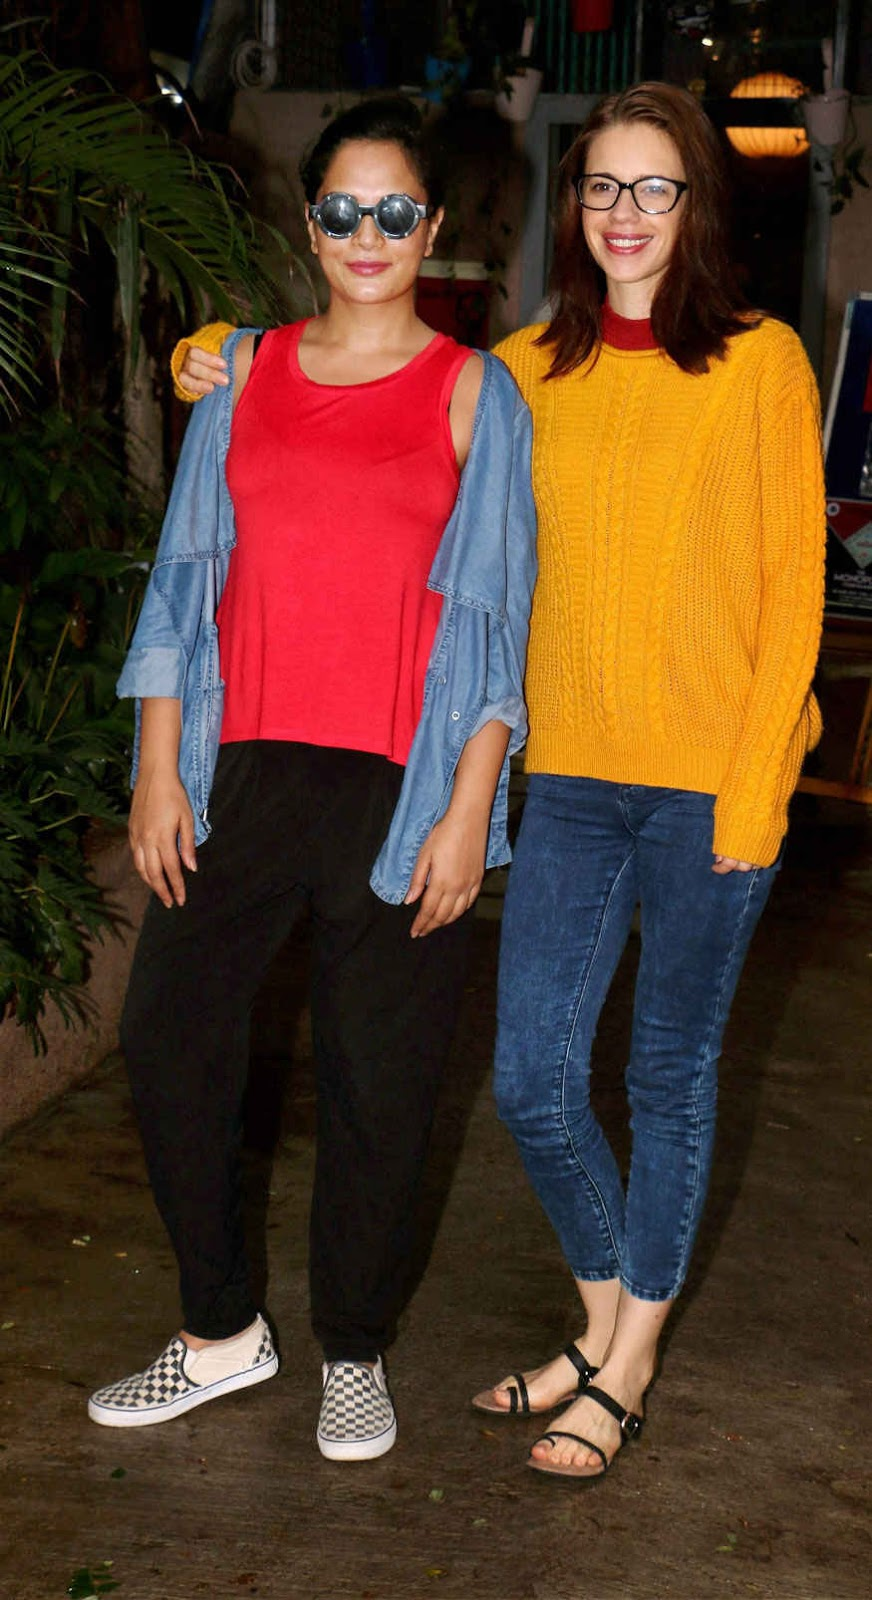 Richa Chadda and Kalki Koechlin Poses During Screening of film 'Jia and Jia'